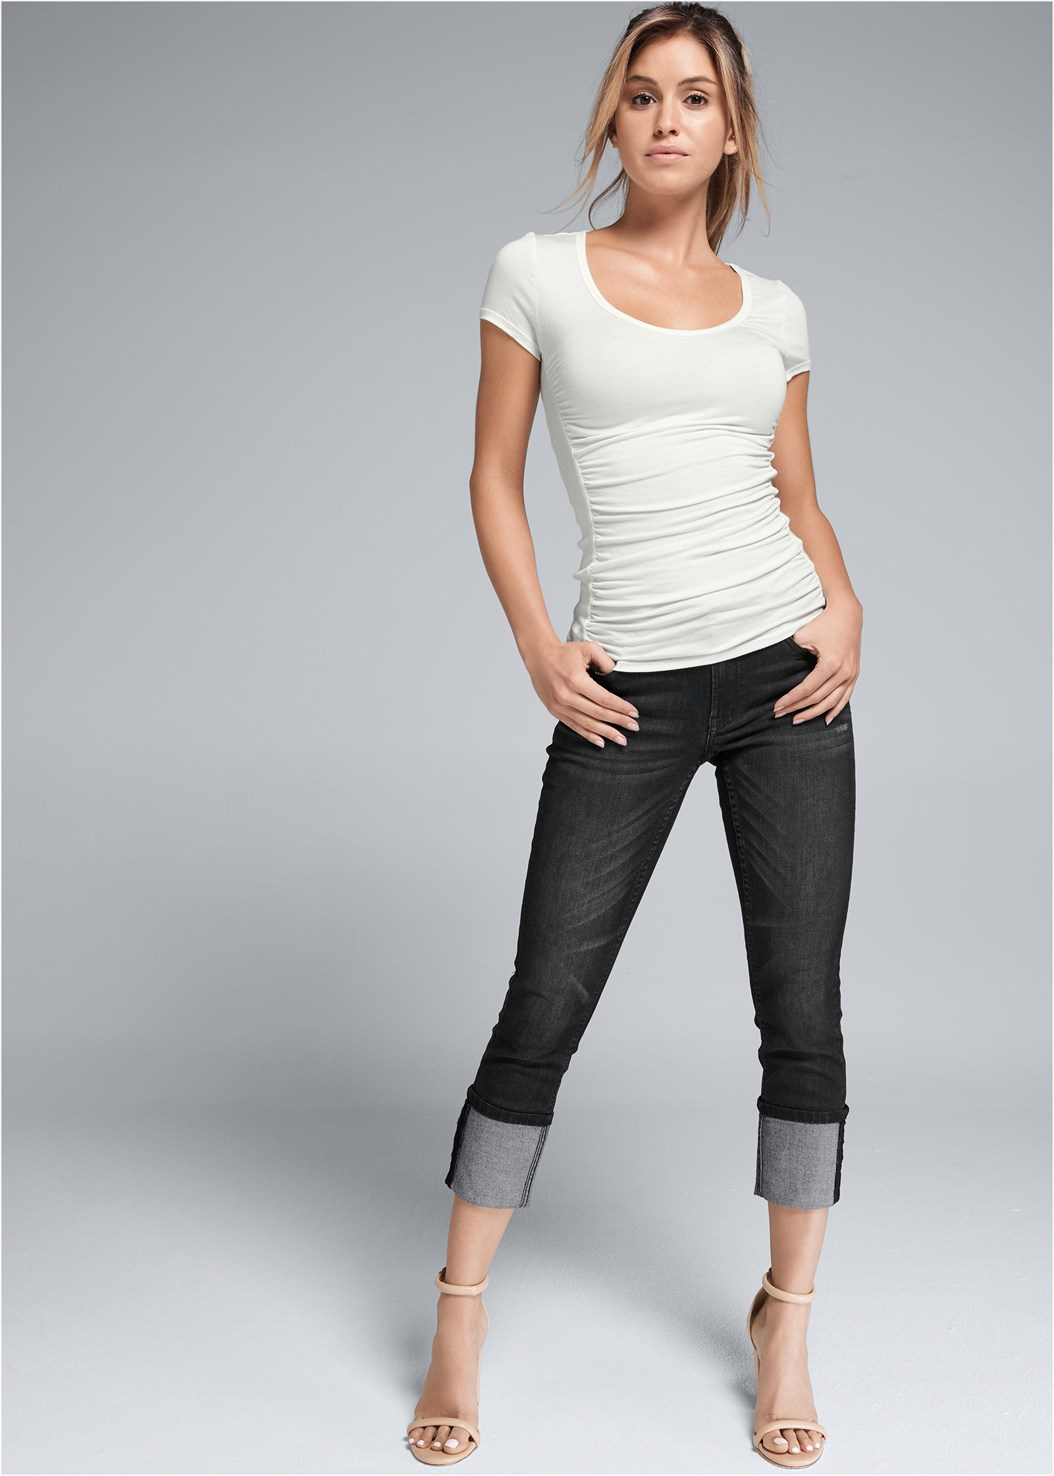 Cropped Cuff Jeans,Ruched Detail Top,Over The Knee Mini Tie Boot